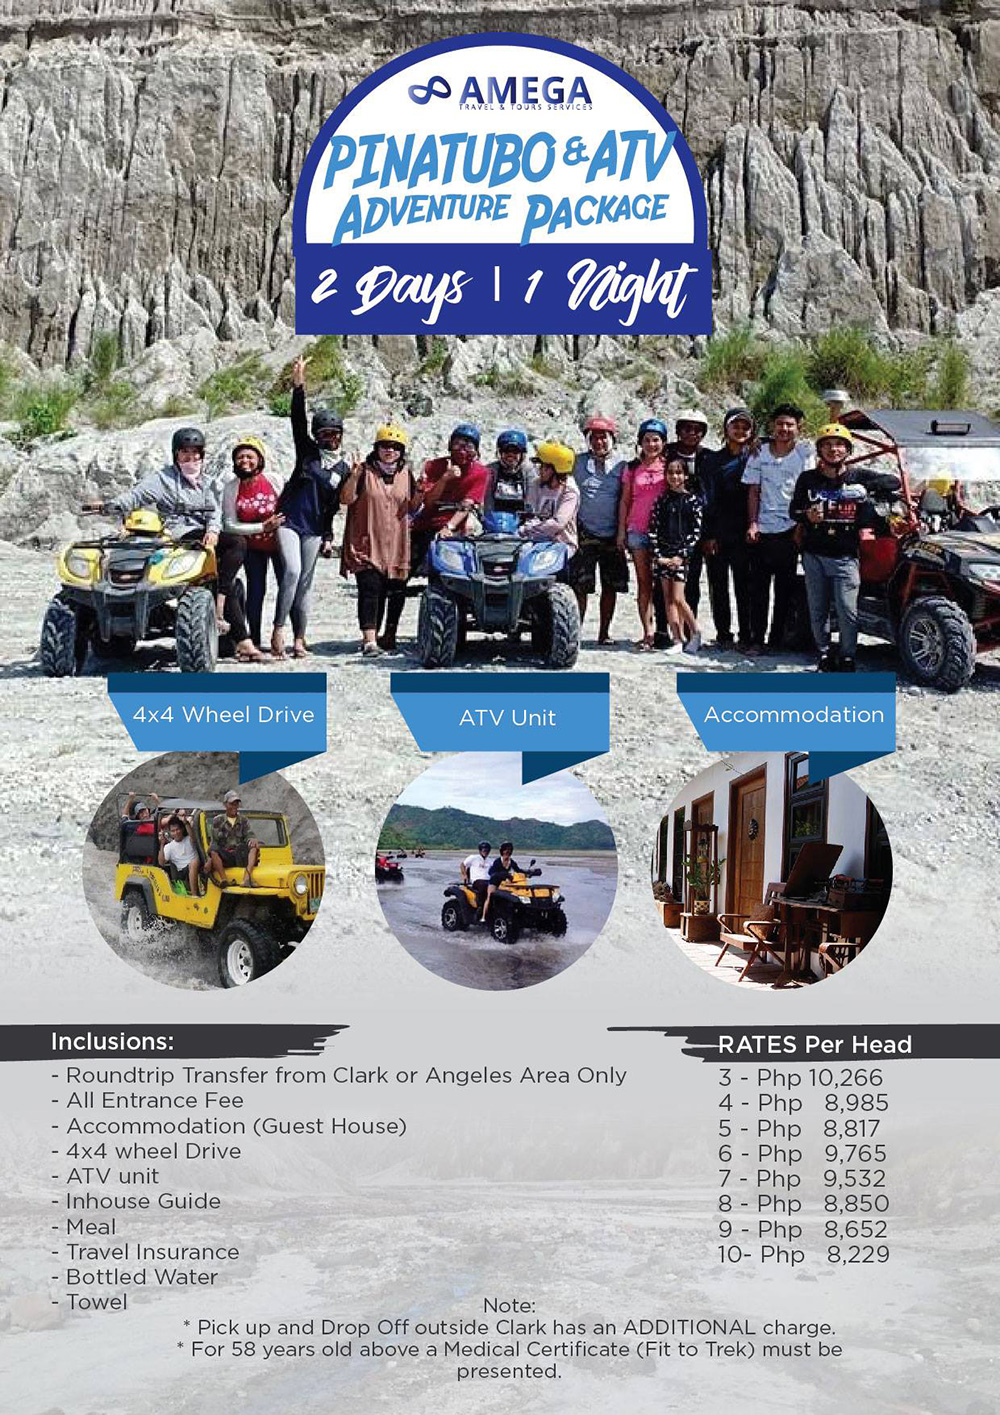 2Days-1-Night-Adventure-Package